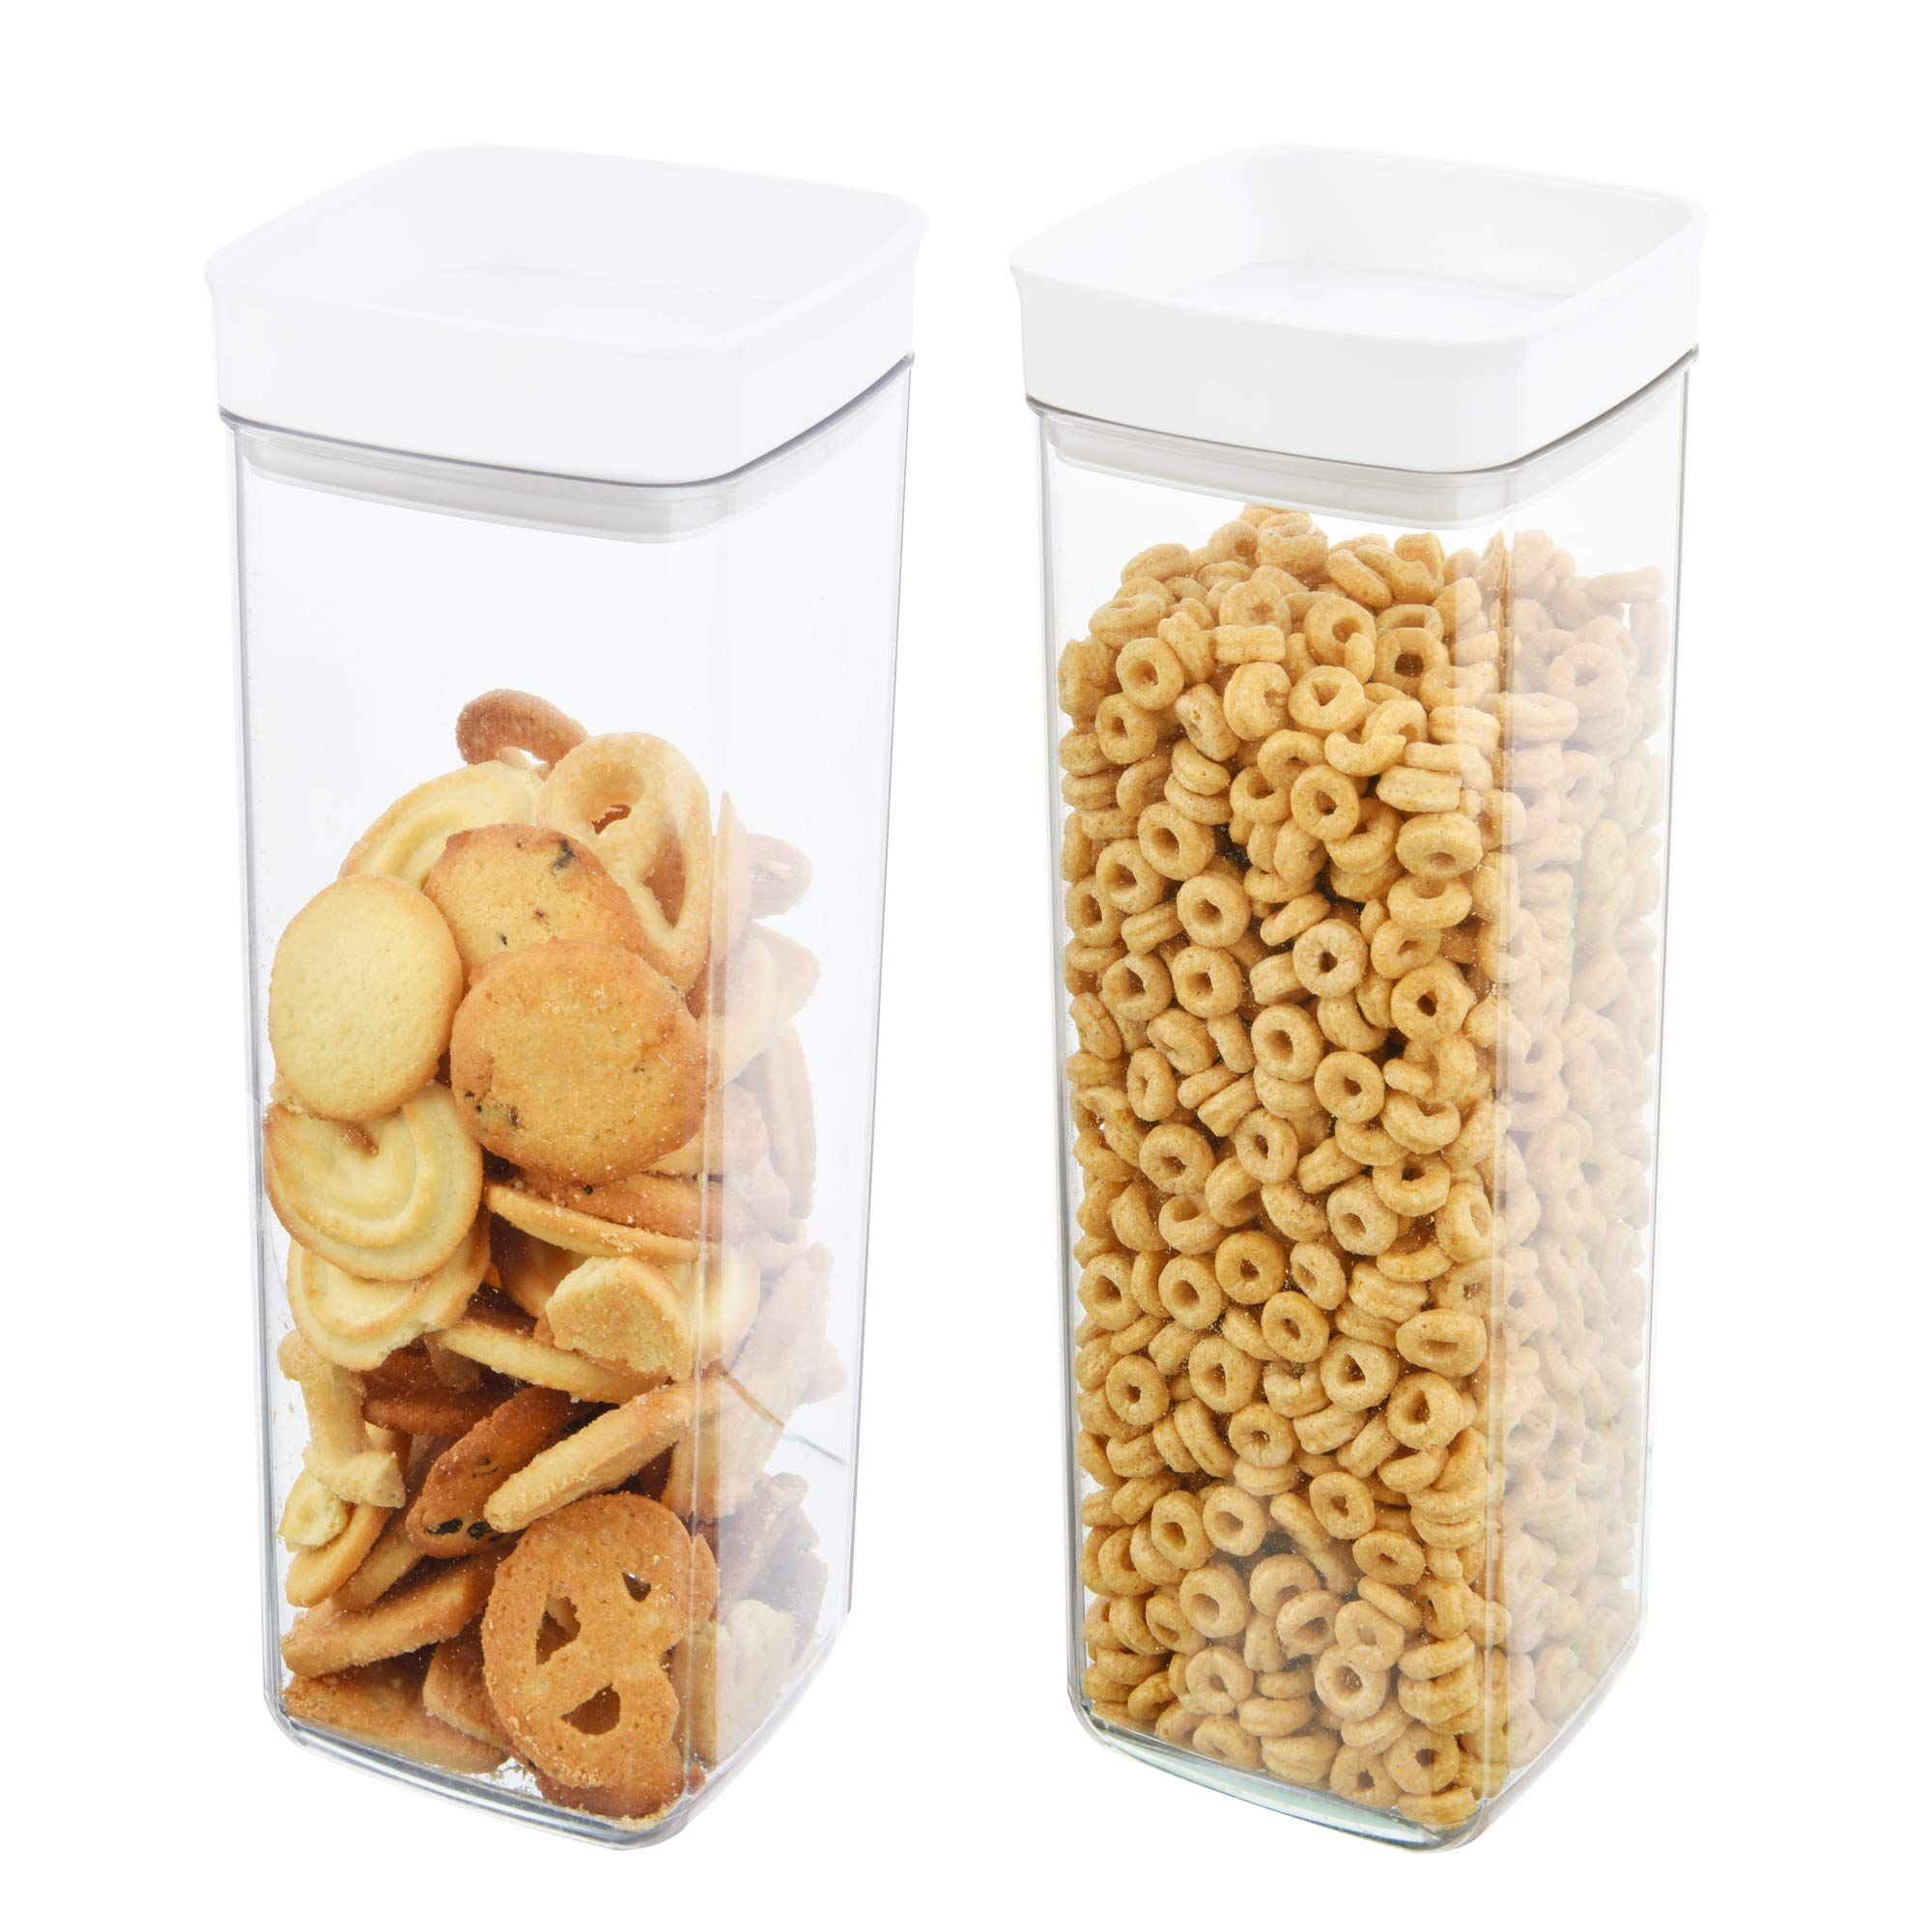 Ambergron Airtight Food Storage Containers With Lids You Can Find Out More Details At The Lin In 2020 Airtight Food Storage Containers Food Storage Containers Food